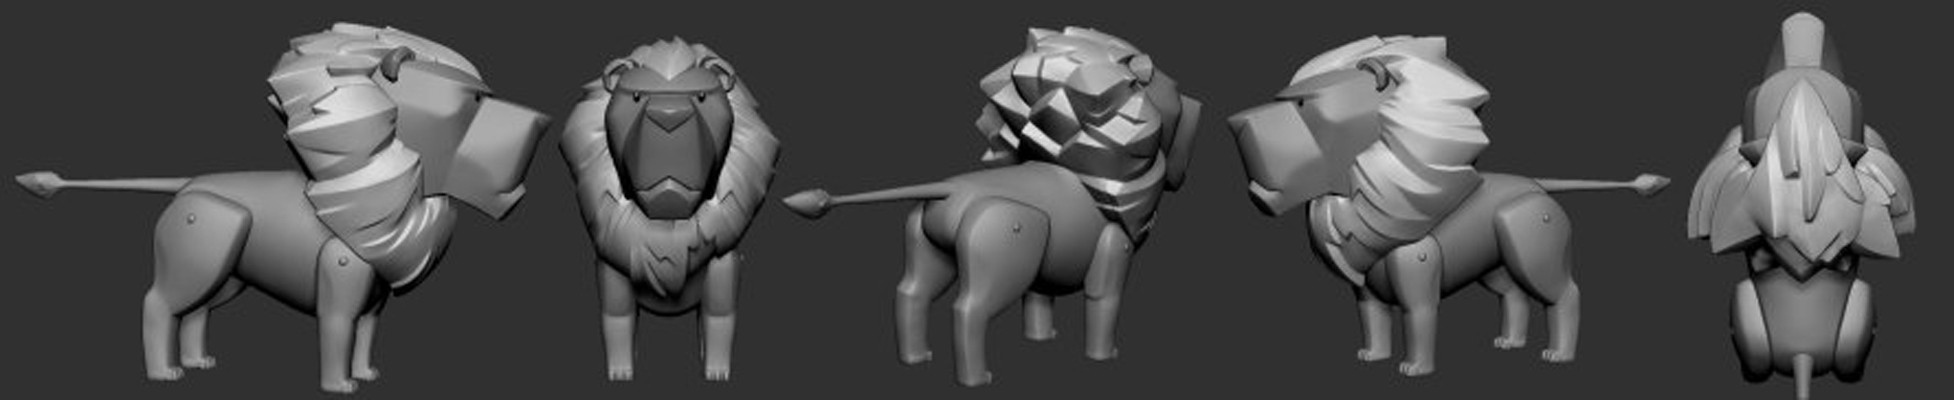 beginnings of prototyping body types, in Zbrush, to try out the stitched-buttoned-sock look.